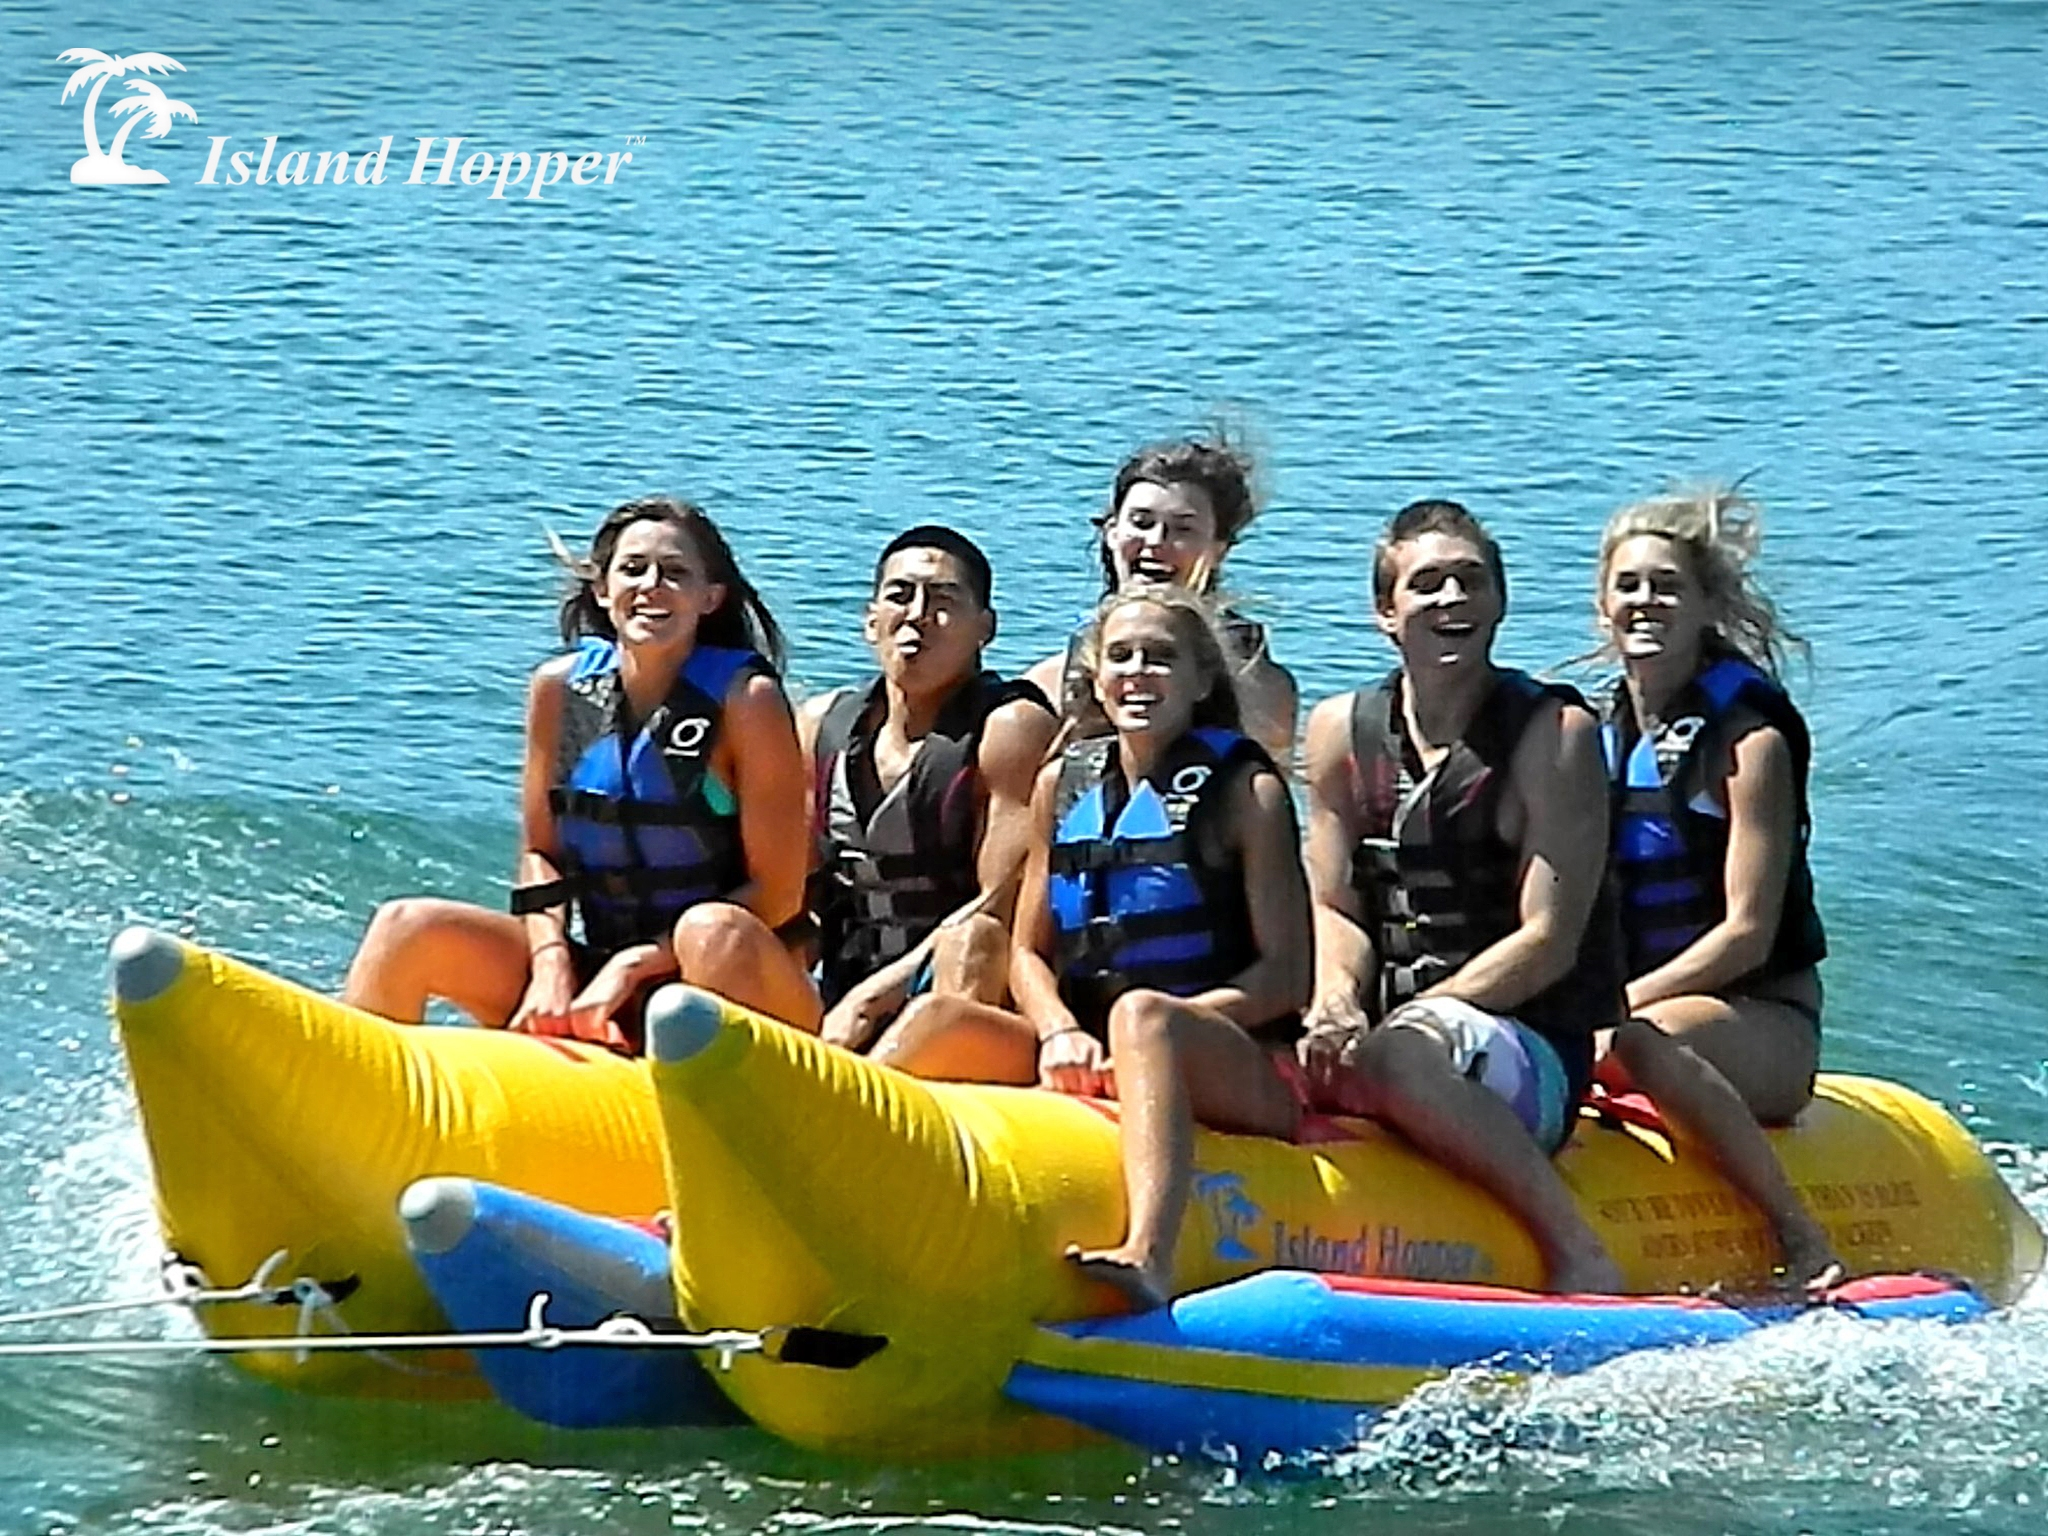 Aqua Sports PVC-6-SBS 6 Passenger 13 Feet Side-to-Side seating Island Hopper Commercial Banana Water Sled